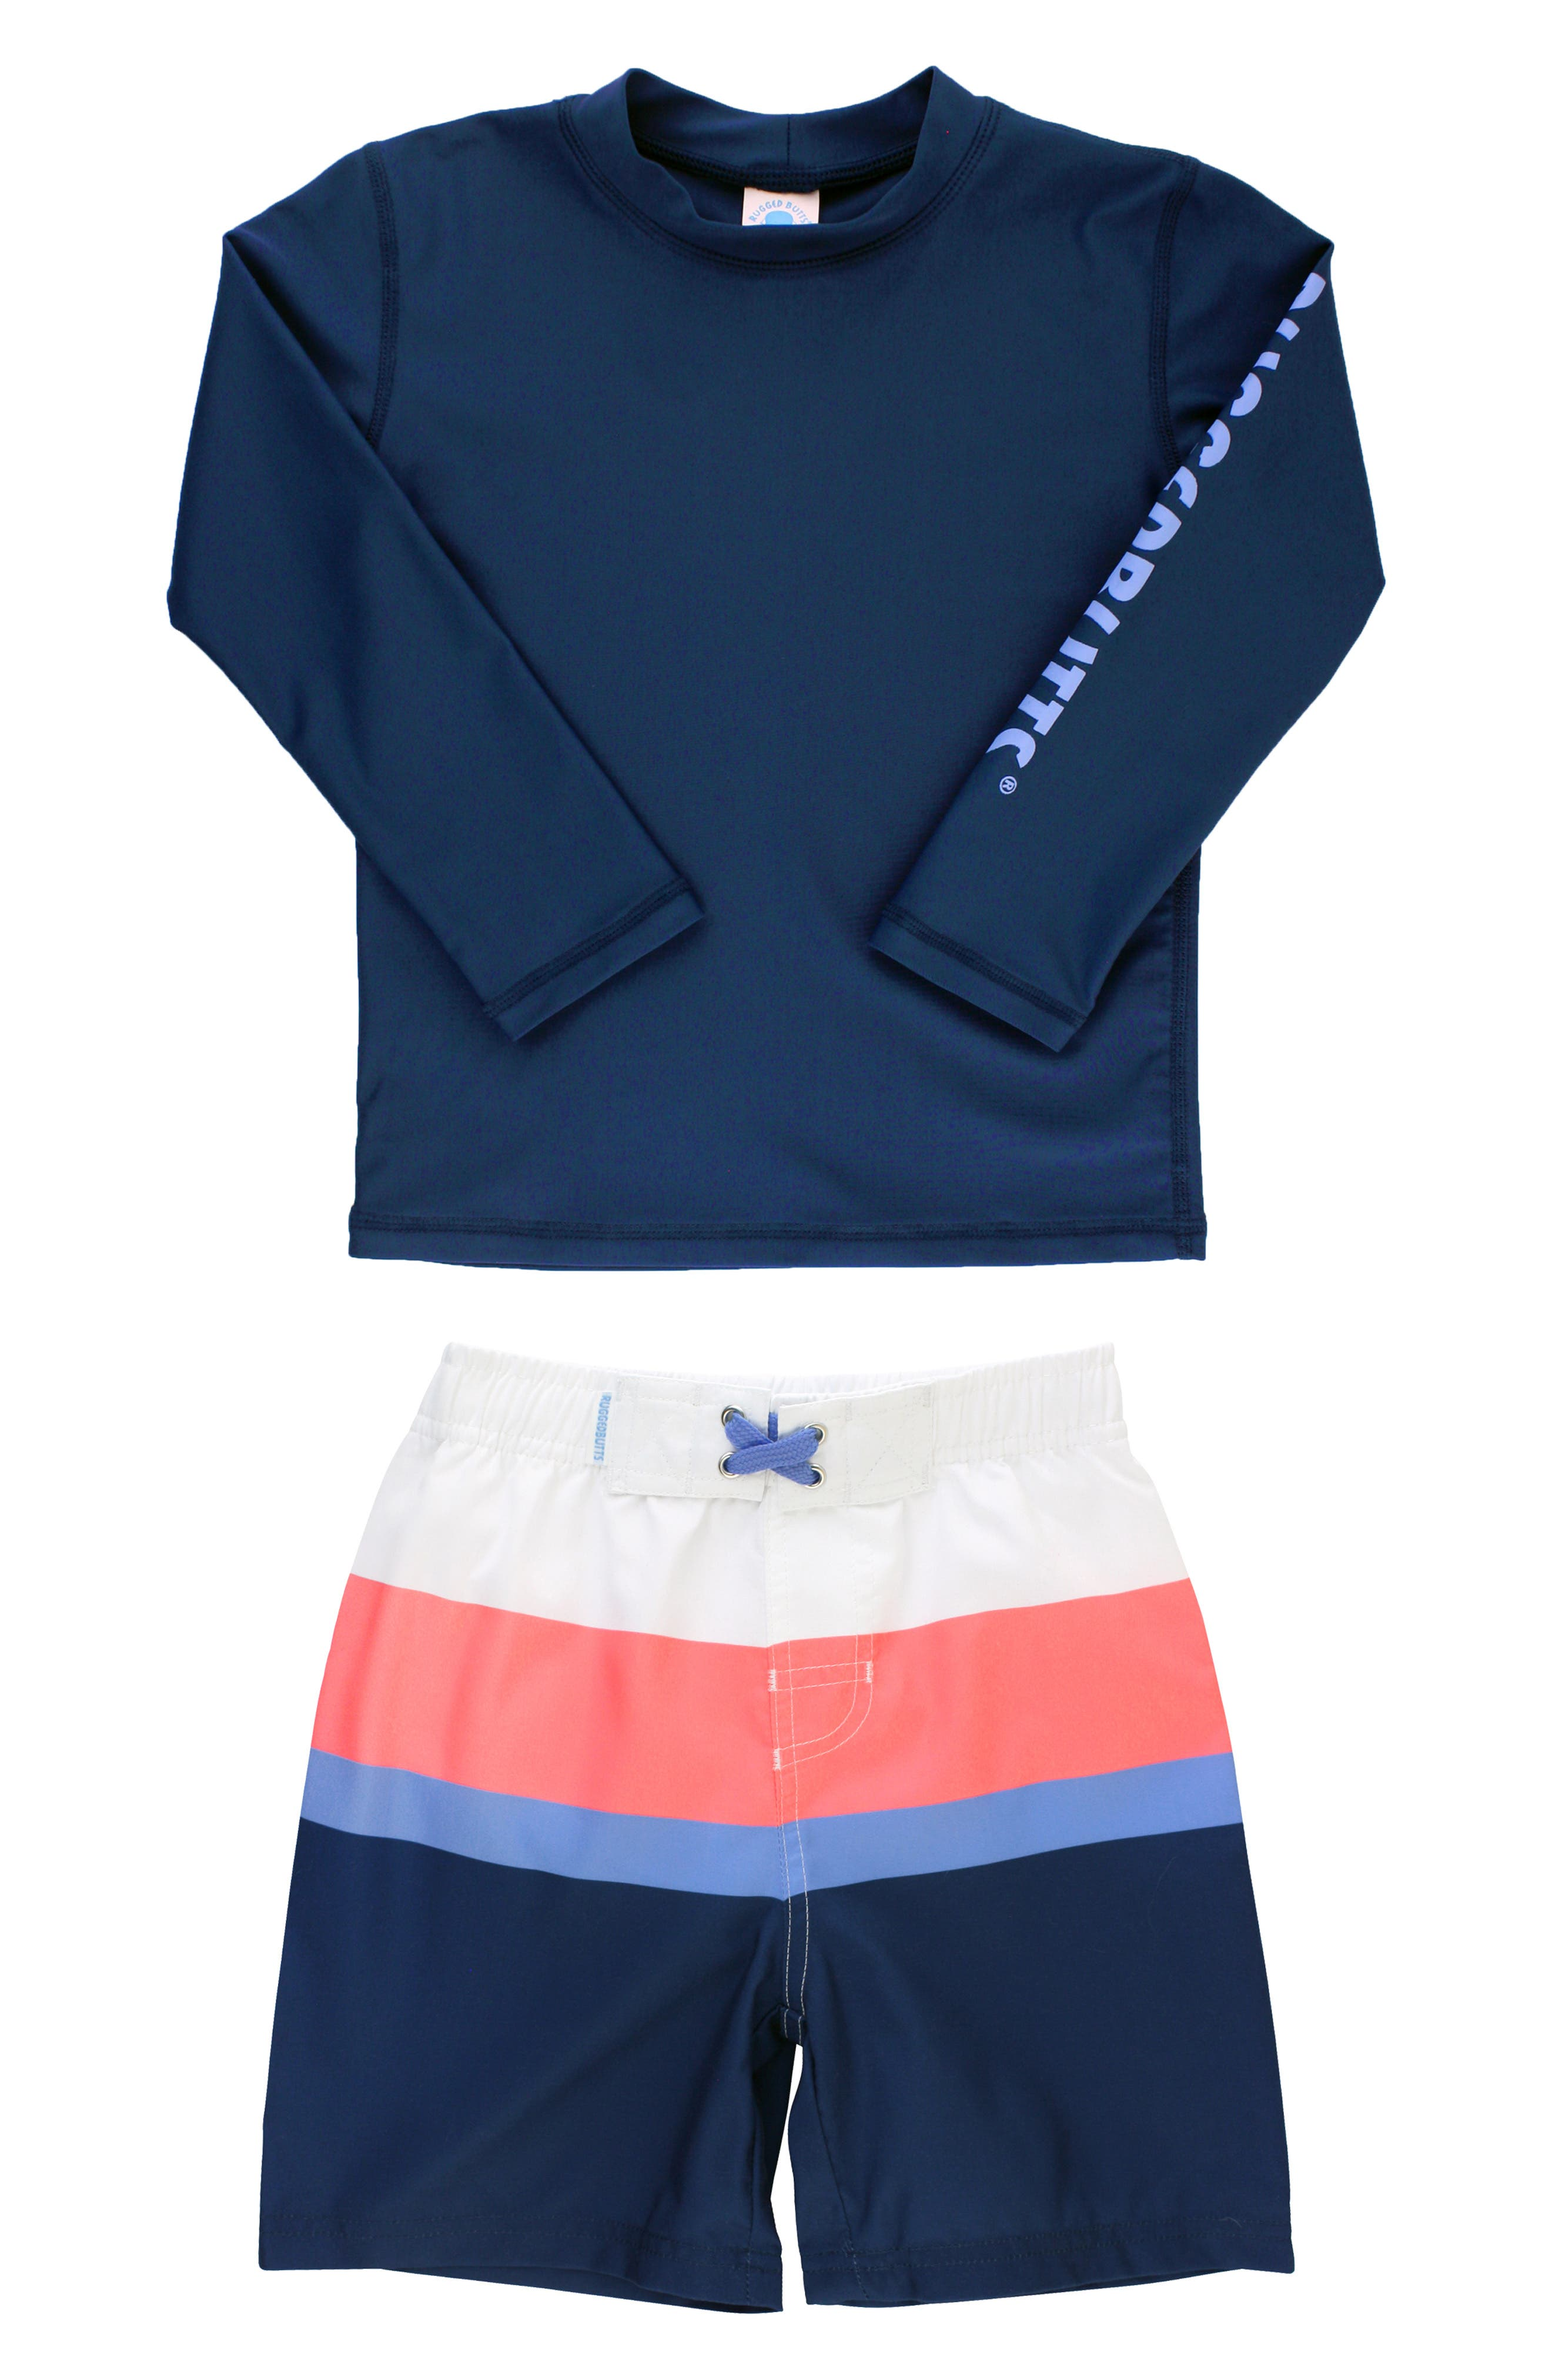 893243d3960a6 Ruggedbutts Swimsuits for Baby & Kidsmsuits & Swim Trunks | Nordstrom